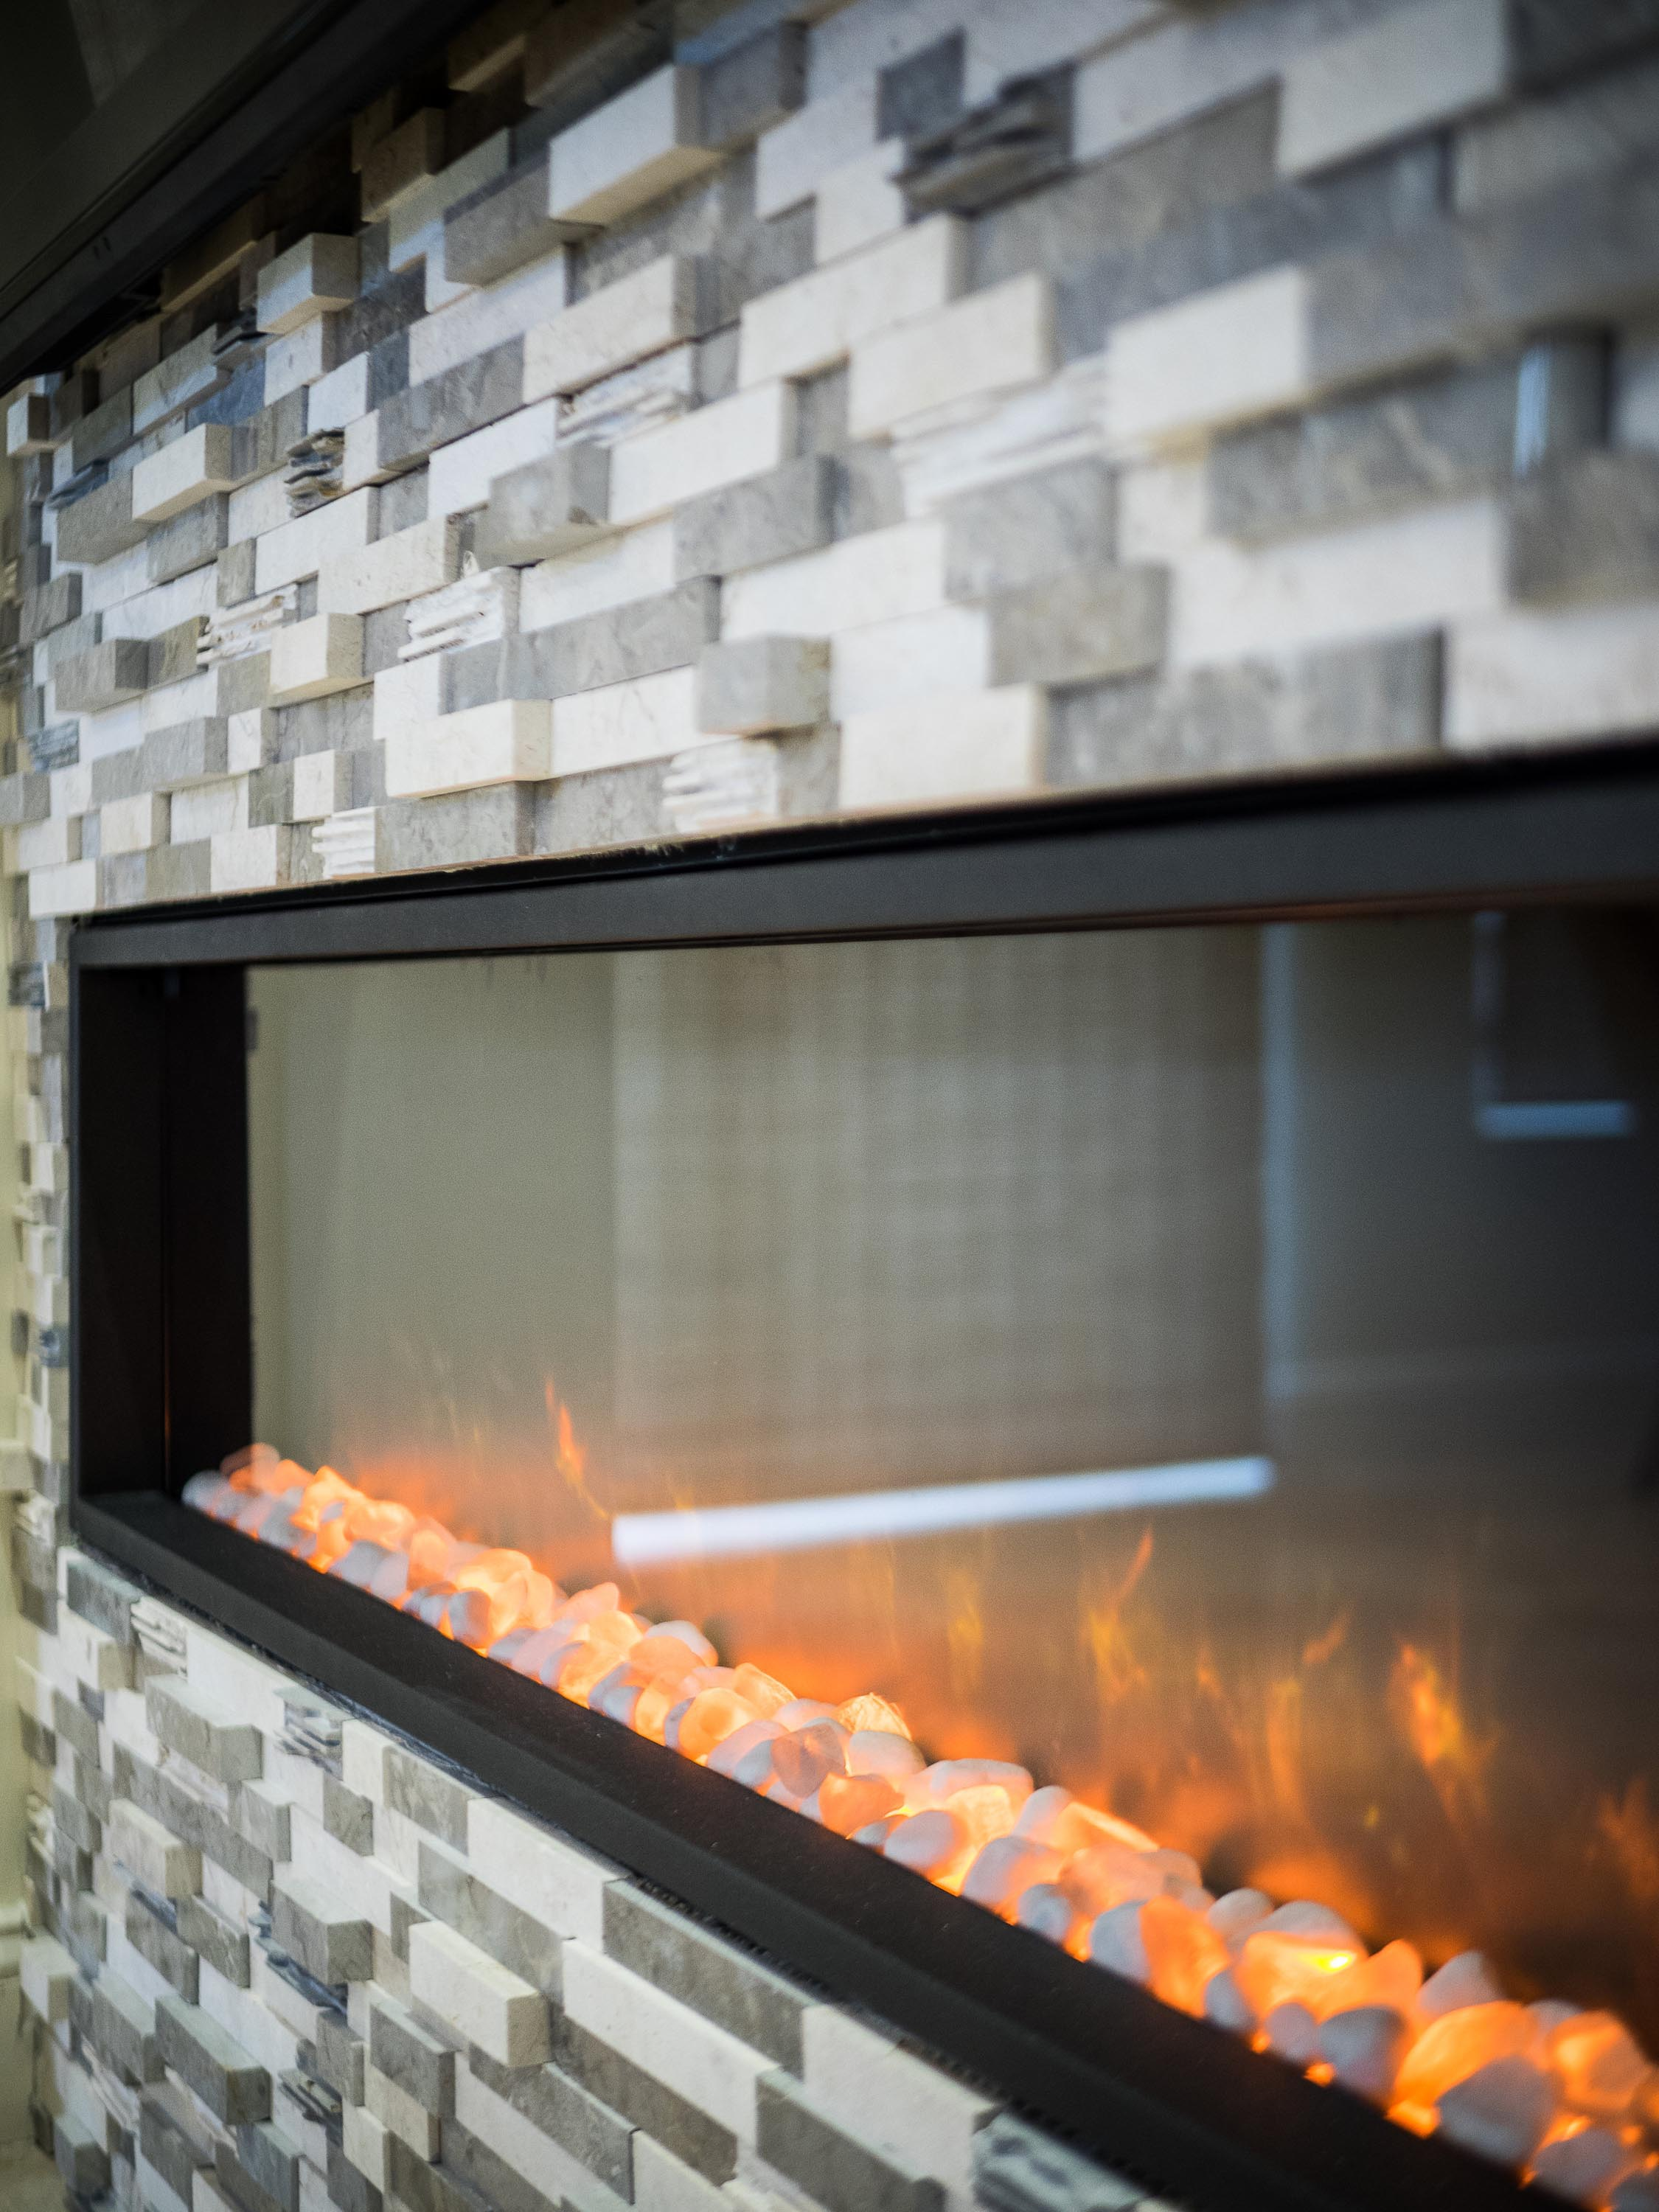 A brick fireplace with burning fire detail